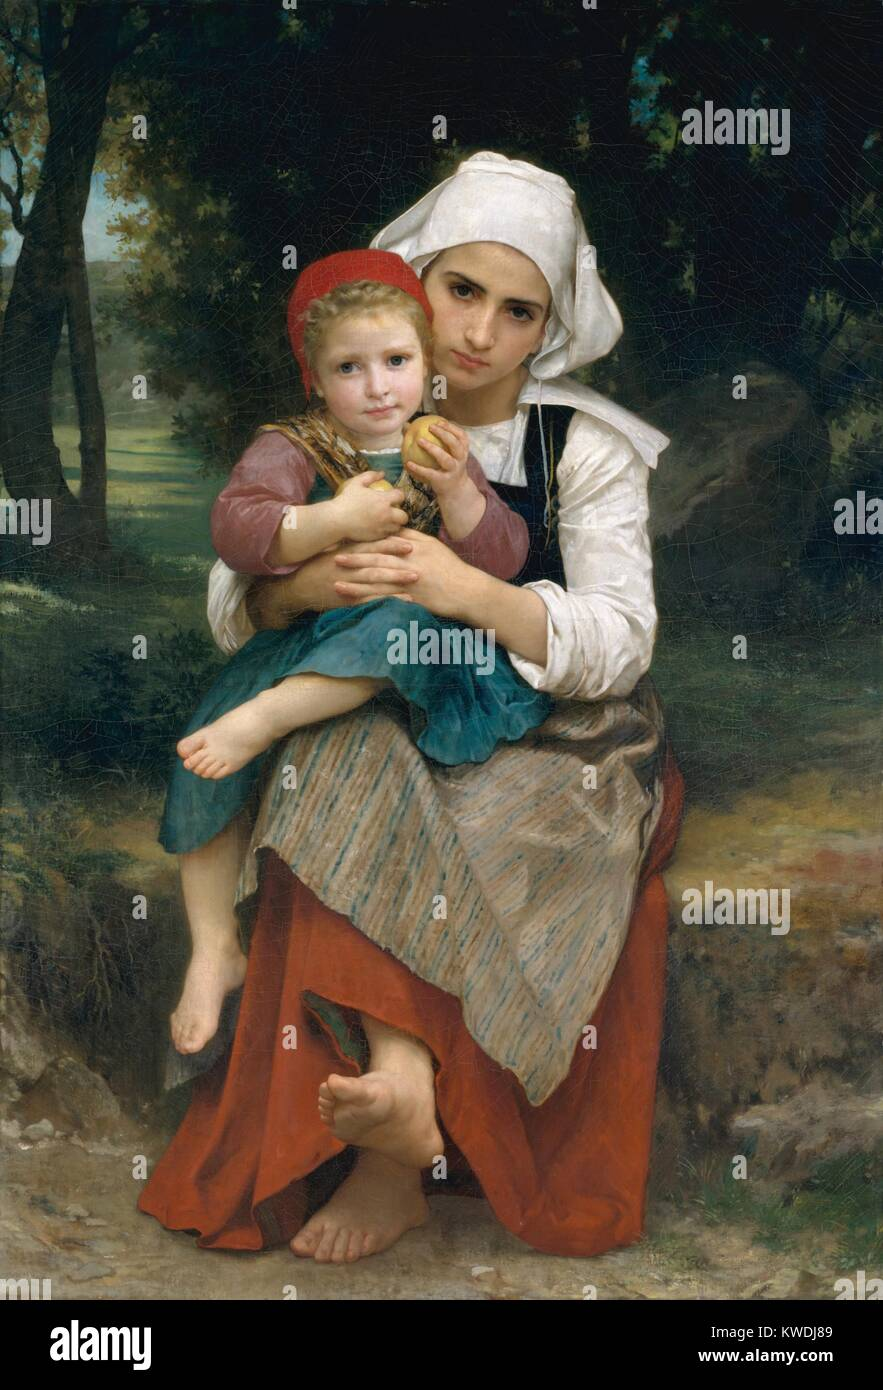 BRETON BROTHER AND SISTER, by William Bouguereau, 1871, French painting, oil on canvas. Perfectly drawn and smoothly - Stock Image